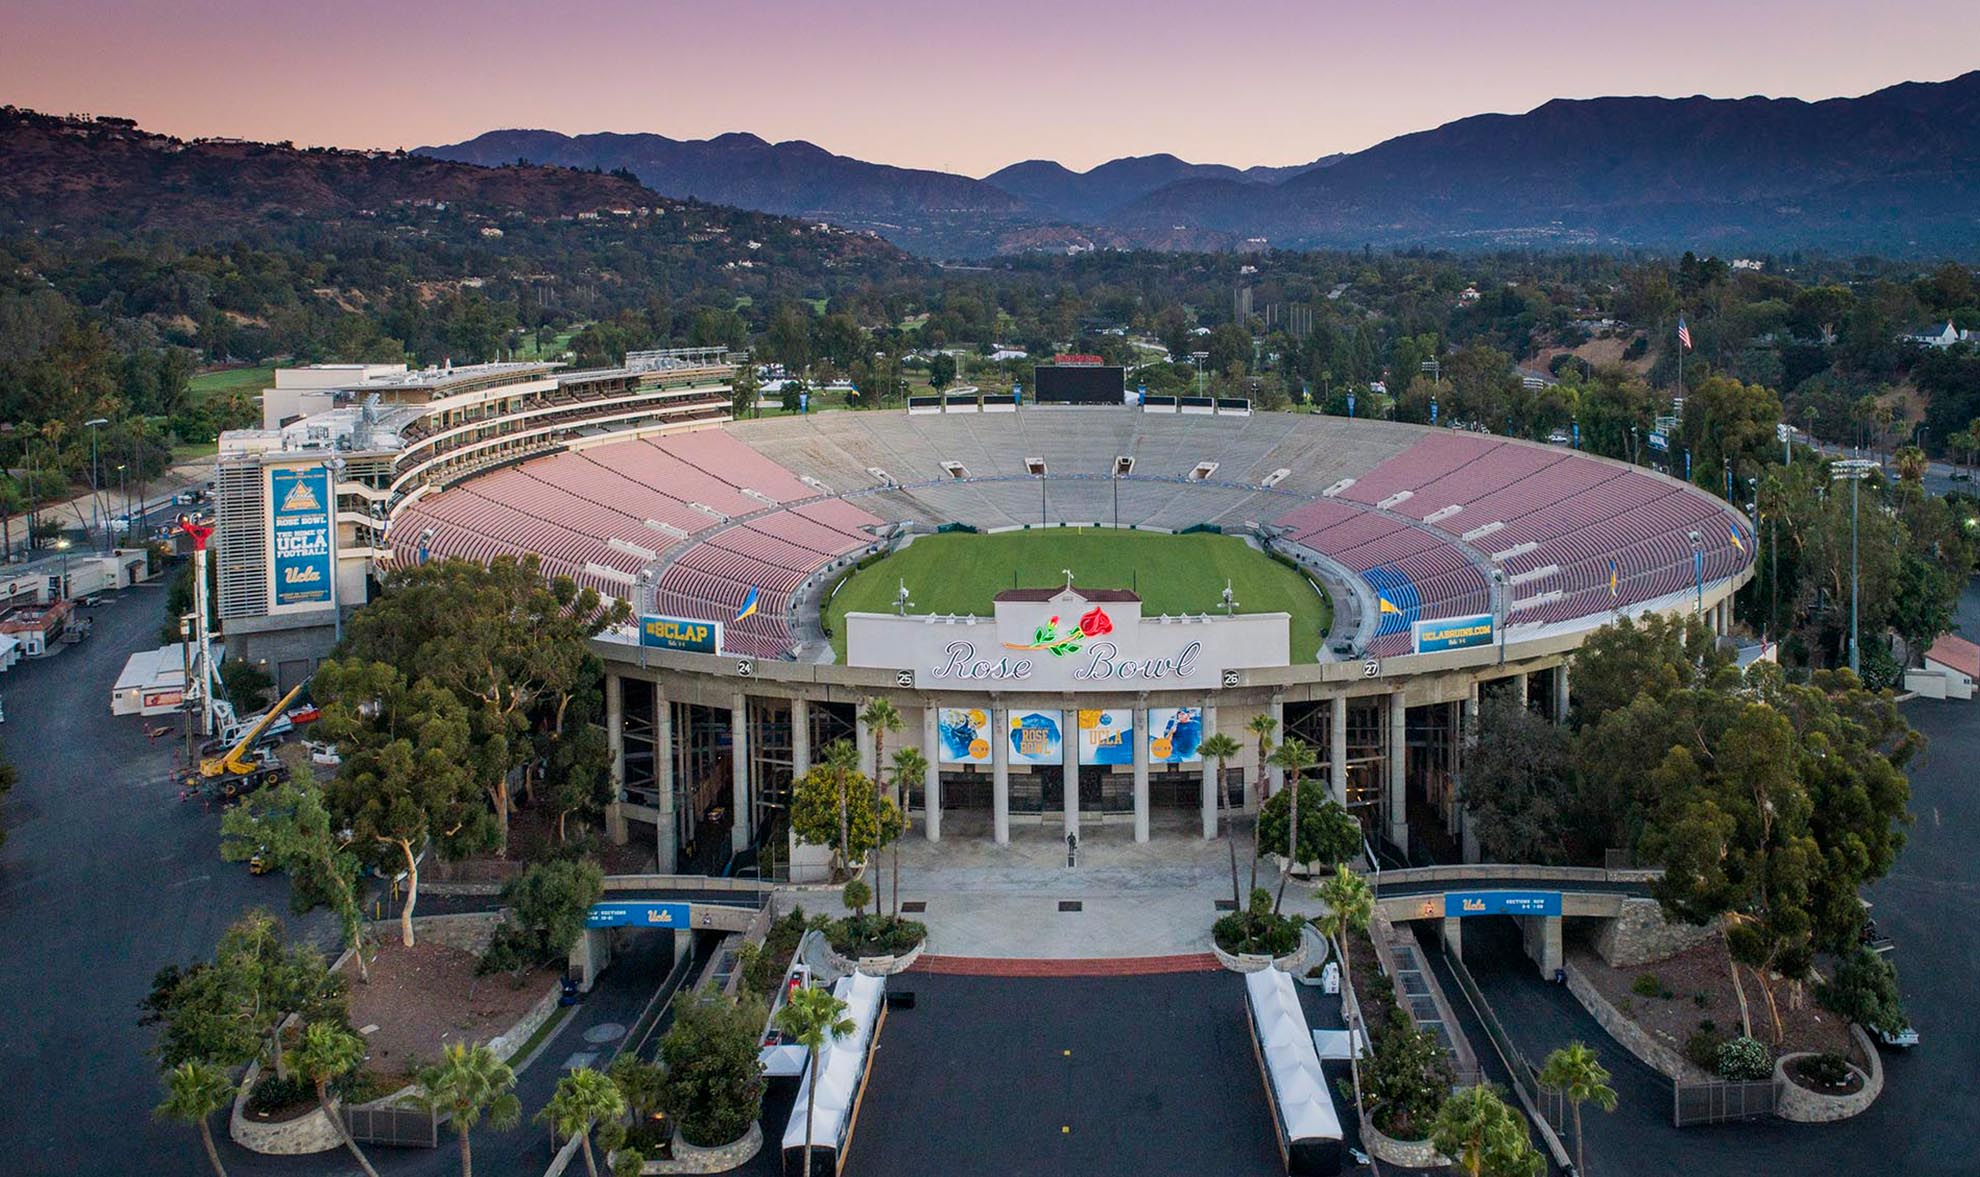 Drone Photograph of the RoseBowl at sunrise Pasadena, CA